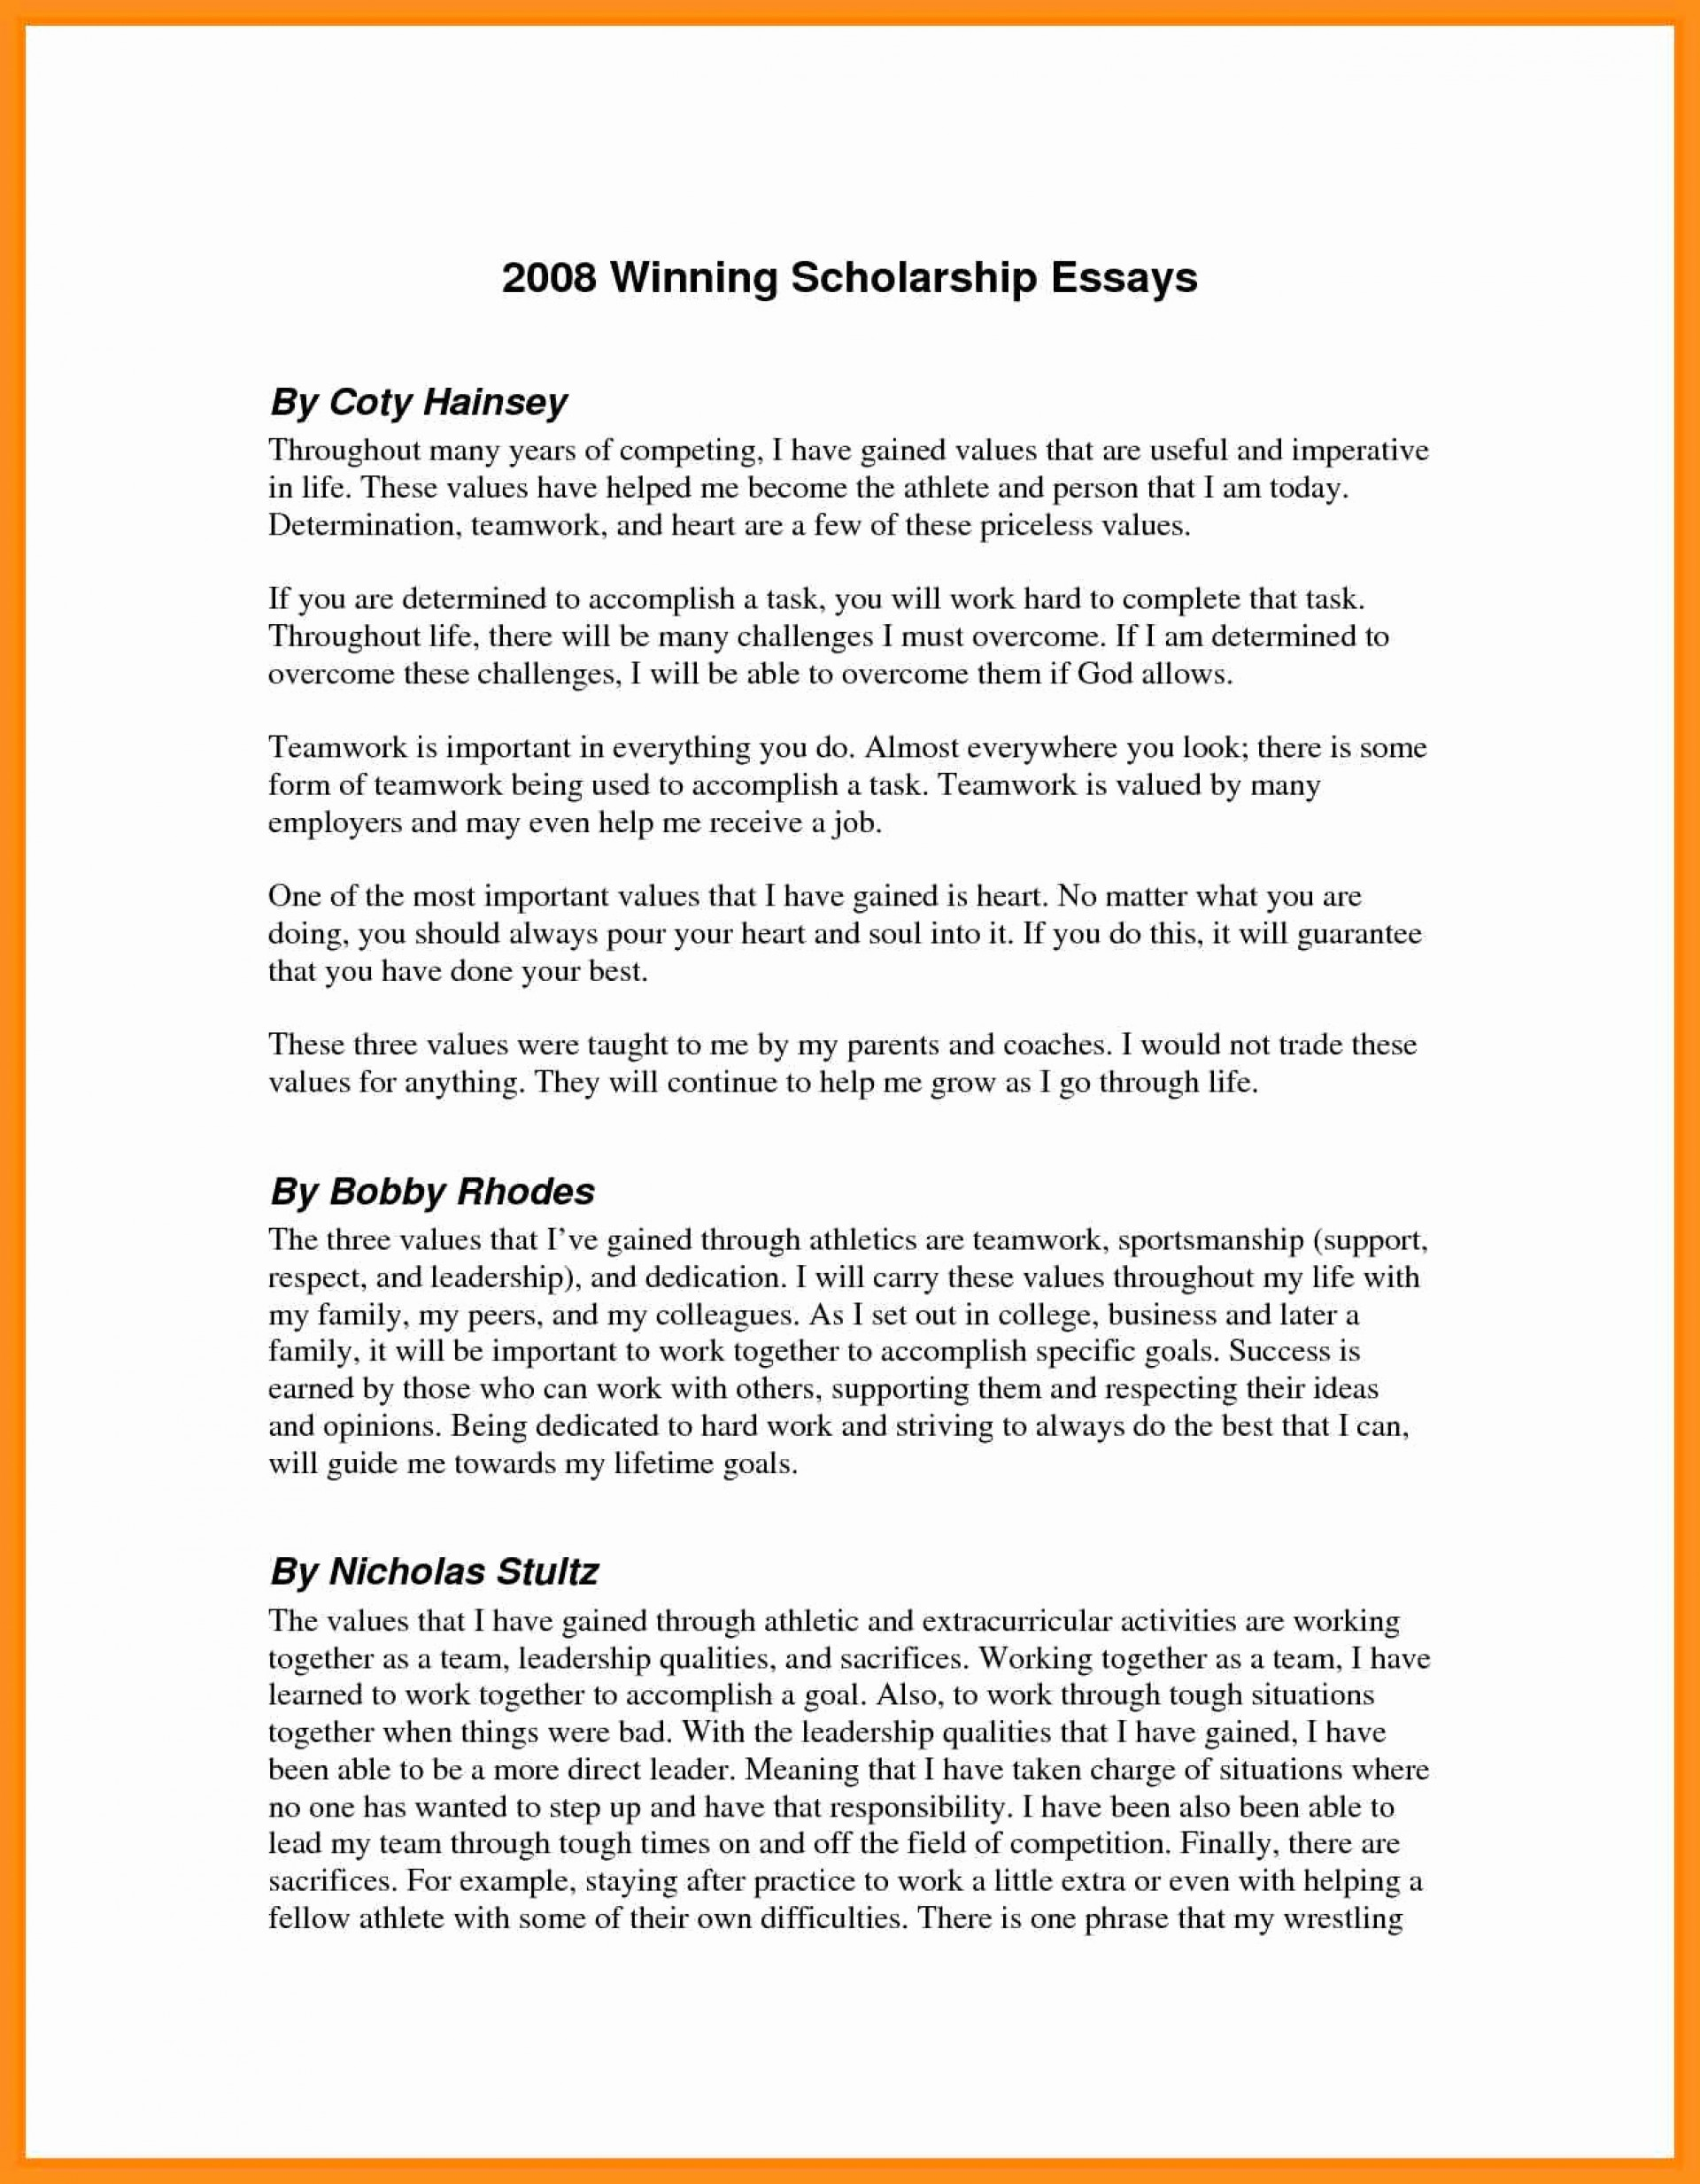 008 Why I Deserve This Scholarshipssayxamples Of Winning Resume Financi Pdf Career Goals Nursing About Yourself Financial Need Words Do You Single Mother Top Scholarship Essay How To Write Sample 1920